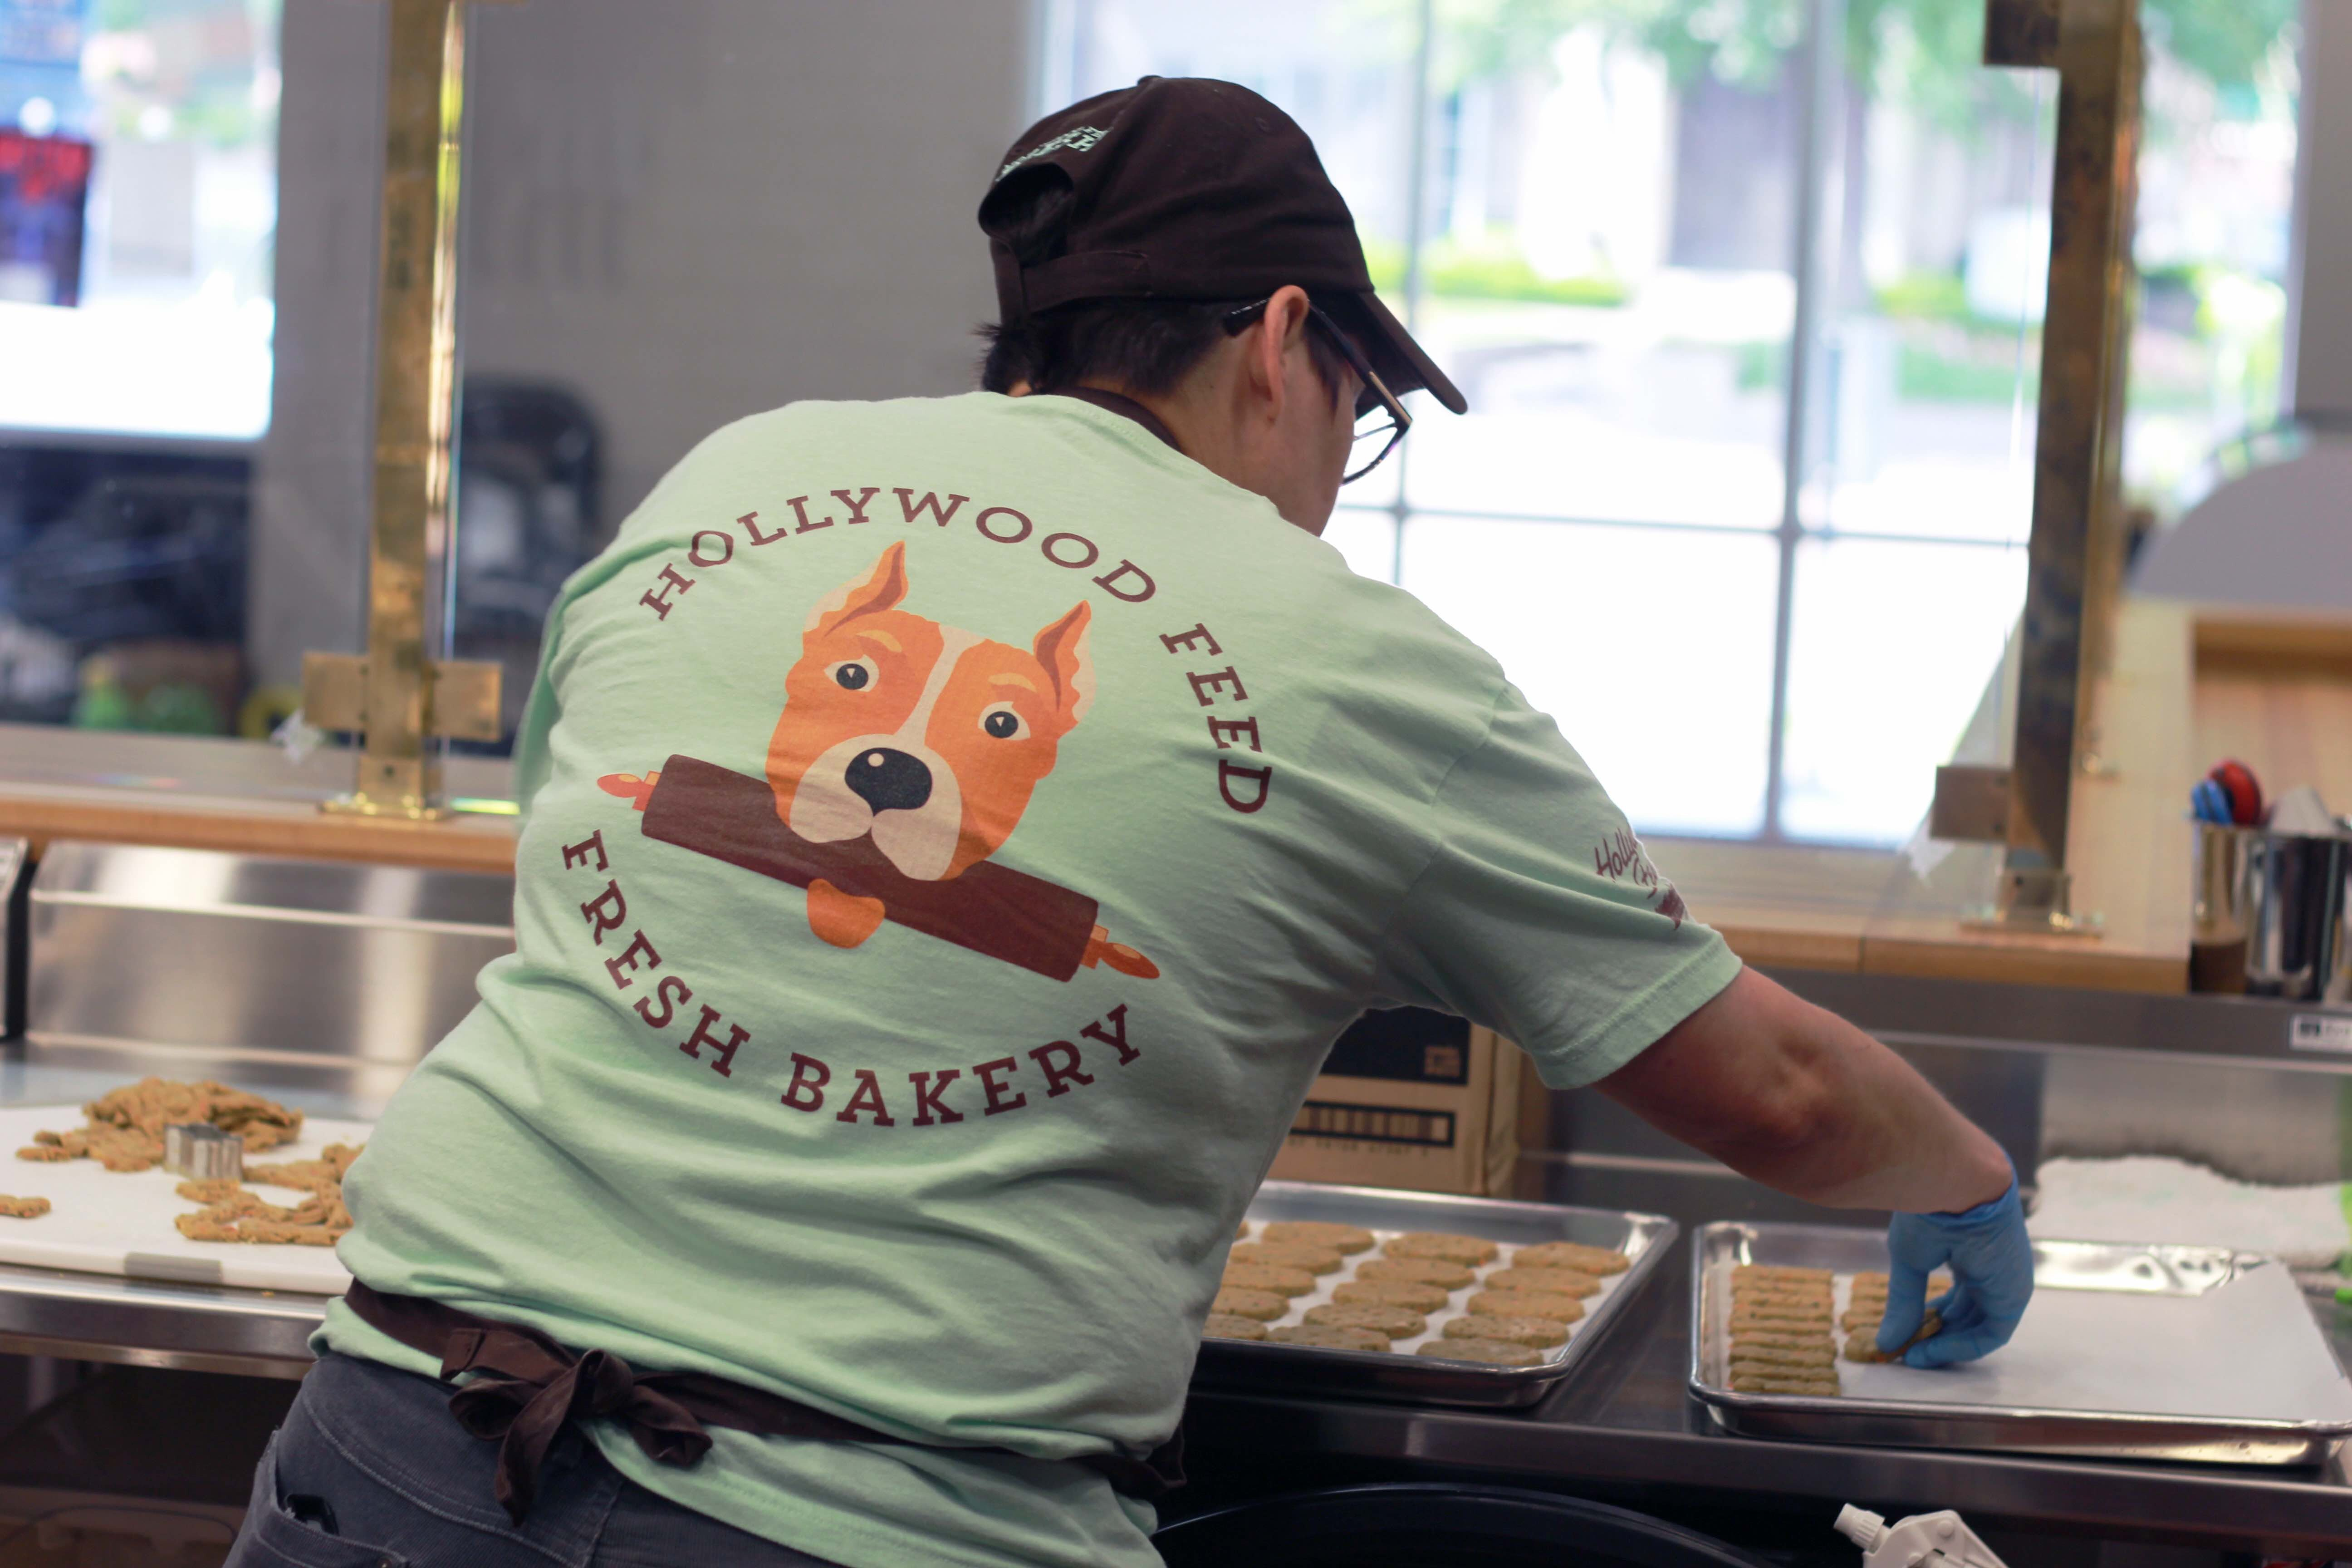 A Hollywood Feed staff member makes gourmet dog cookies. The story offers a range of gourmet treats including cakes and cupcakes. (Submitted)